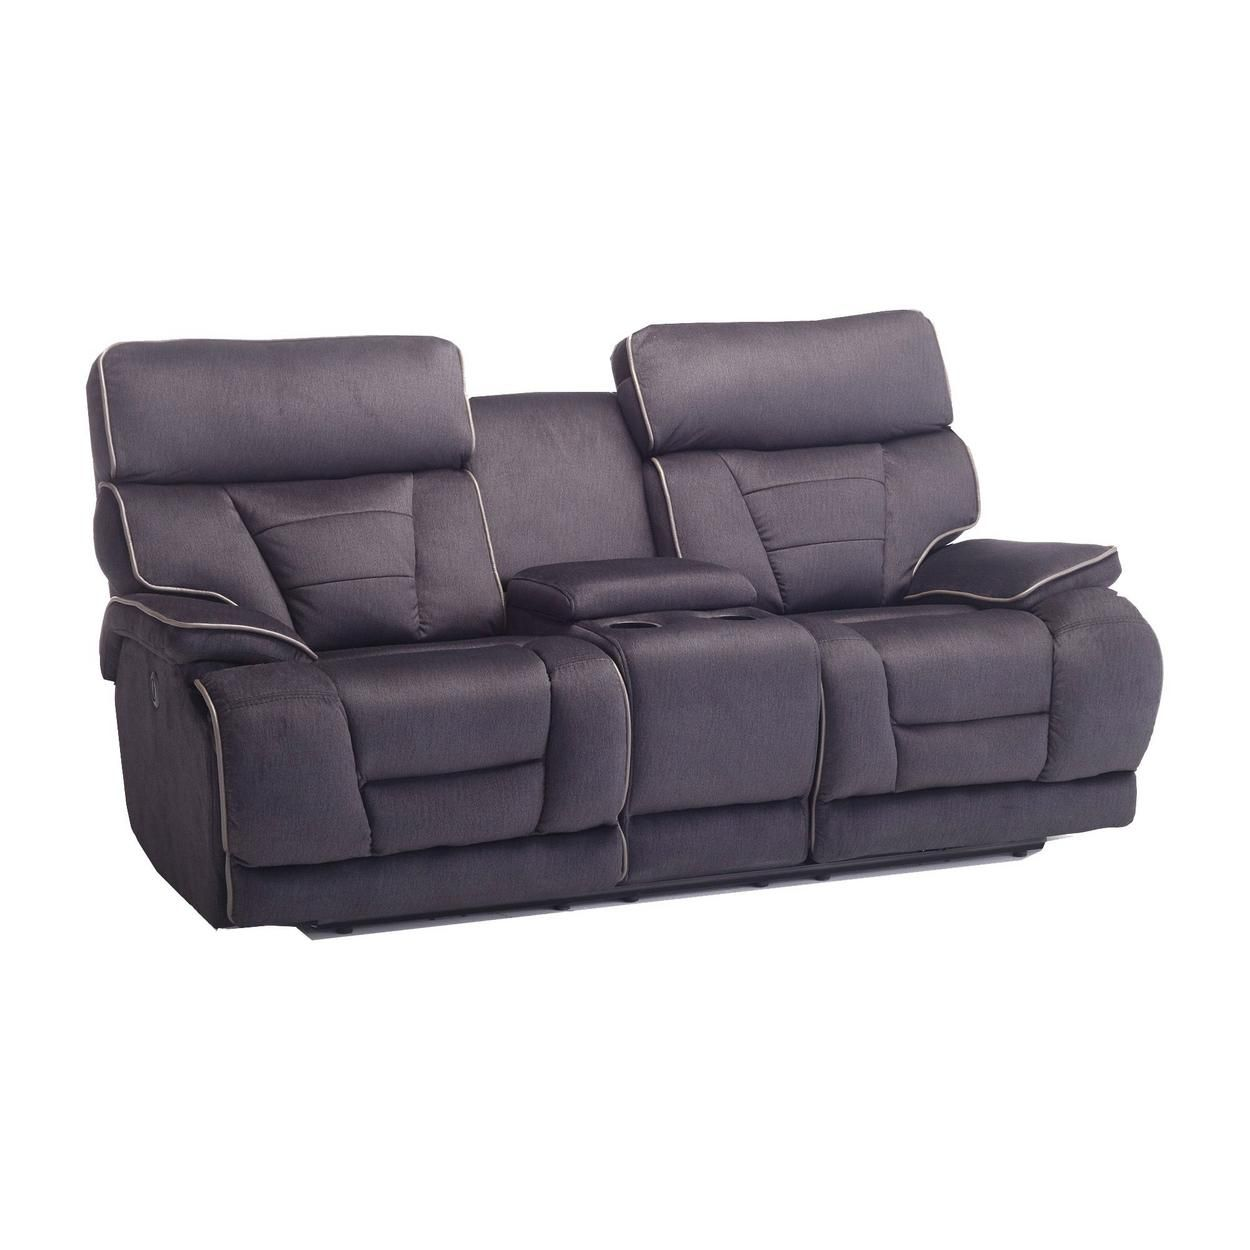 in and whiskey buy mayo darseys furniture simple residence inspiration loveseat applied online leather to sofa your omaha